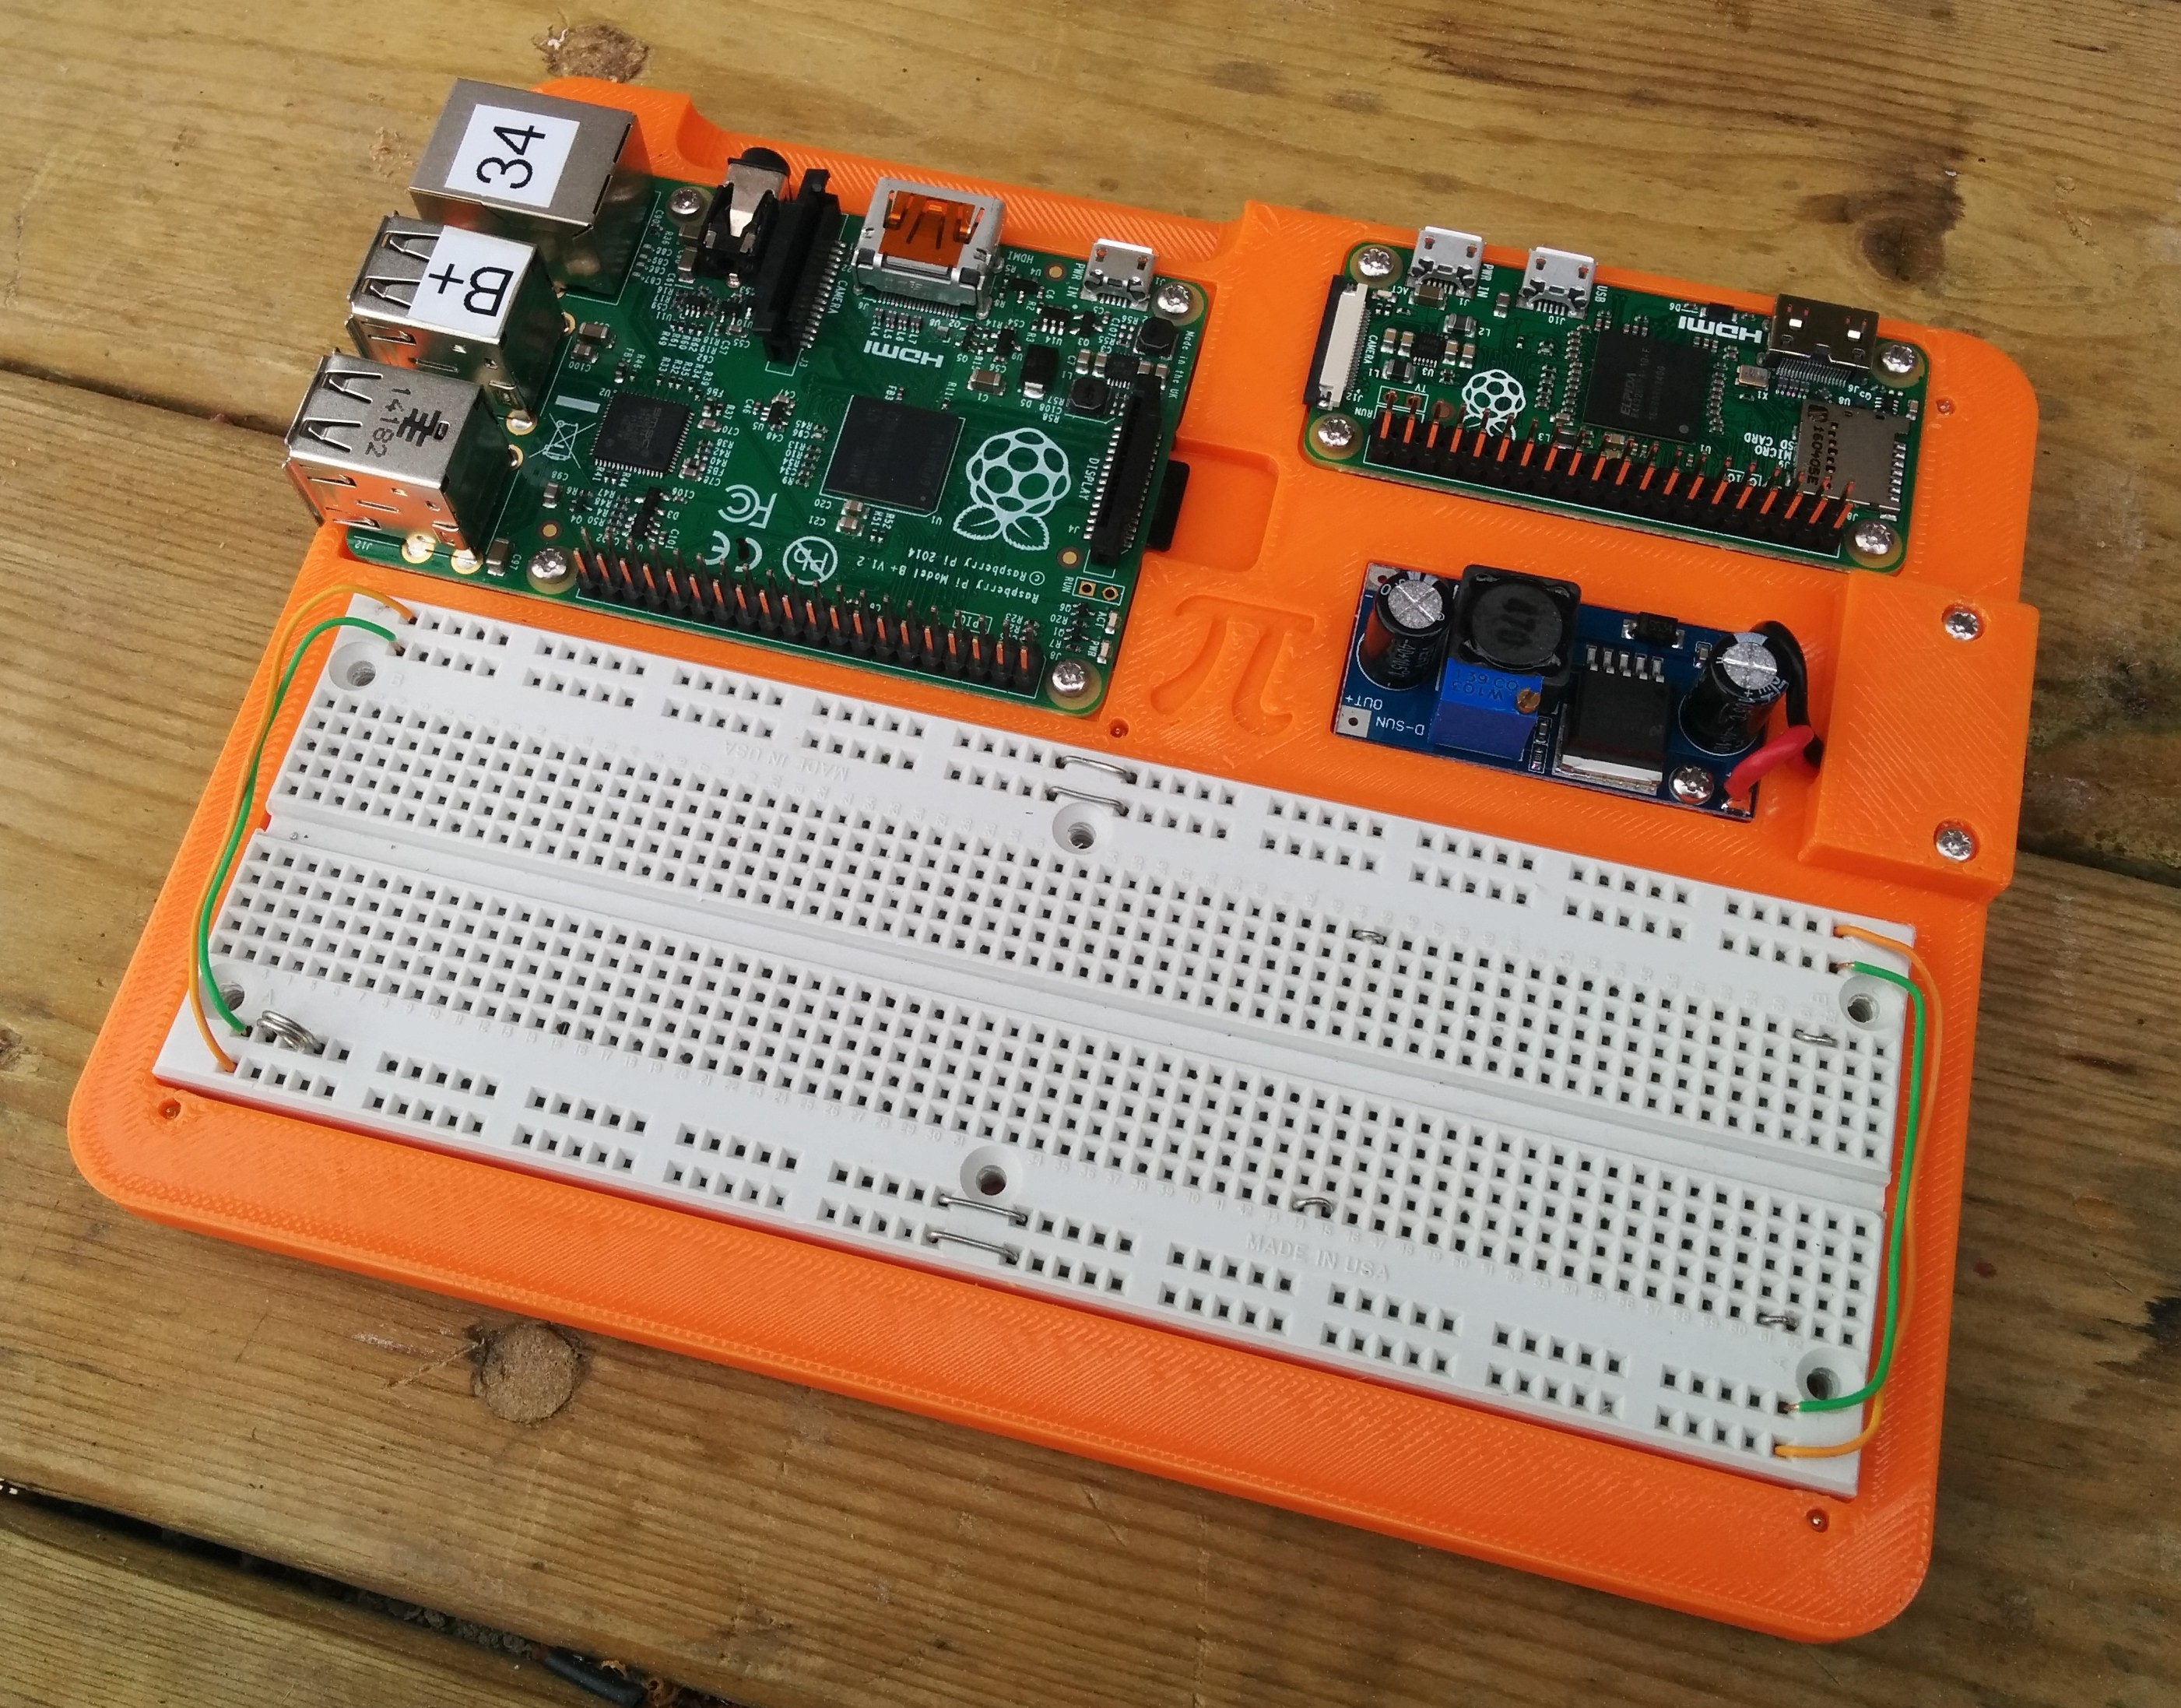 Breadboard Raspberry Pi Prototype Board By Dimwit Dave Thingiverse Breadboards Electronics Images Original